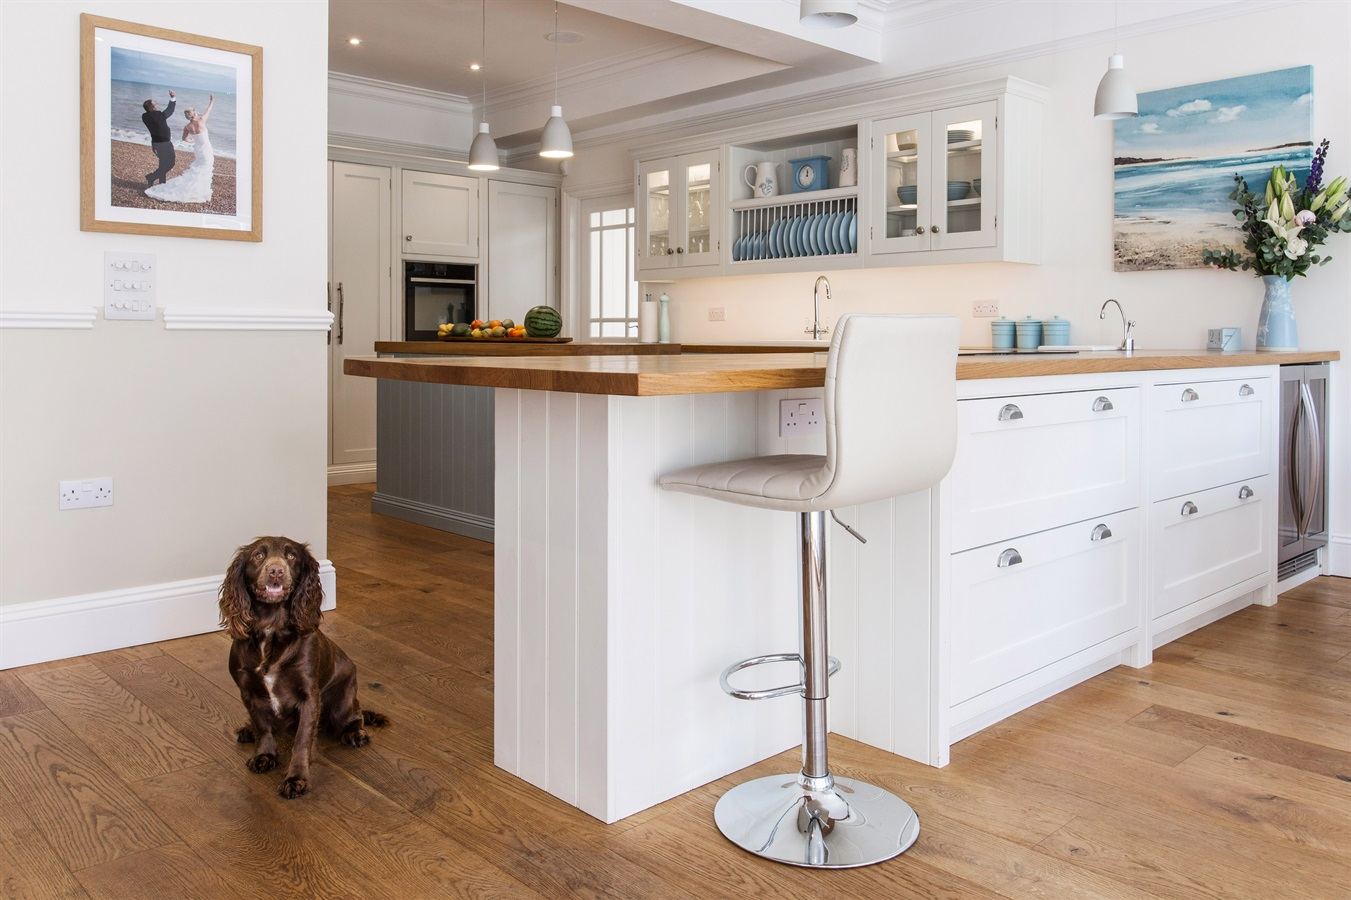 A classic, country style handmade kitchen extension - This family home down on the Kent coastline was in need of a spacious and welcoming kitchen suitable for use by all the family. The homeowners wanted a classic, country style kitchen, with all the added benefits of contemporary living.